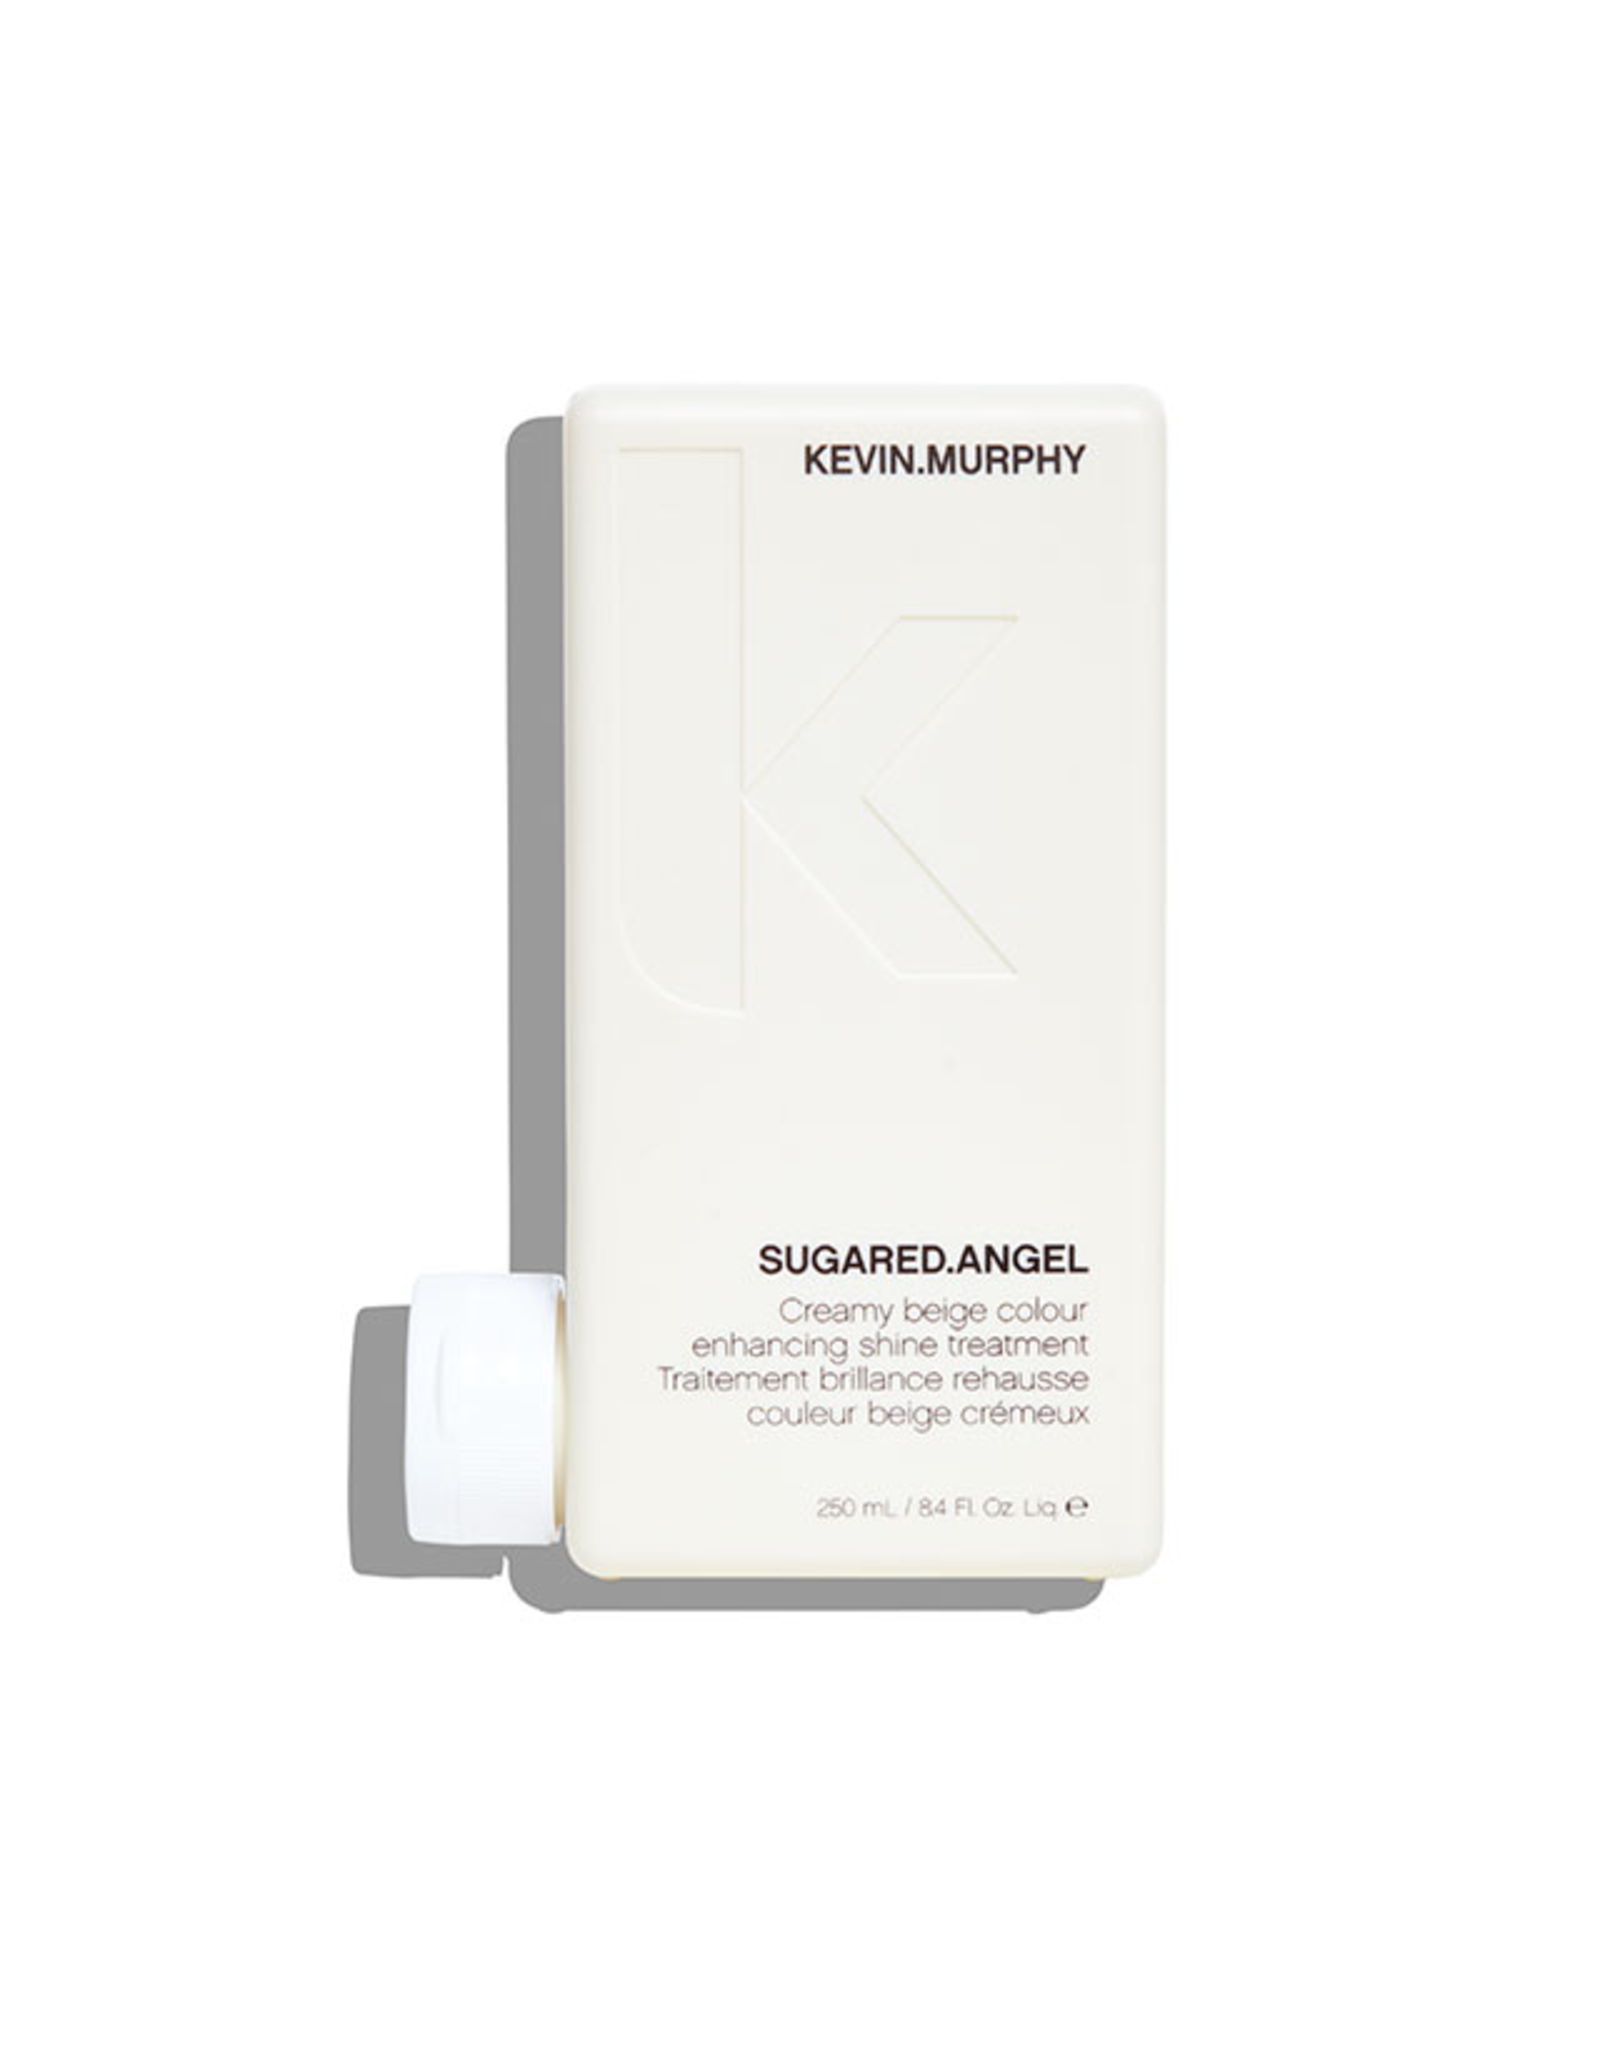 KEVIN.MURPHY Sugared.Angel Treatment (250 ml)